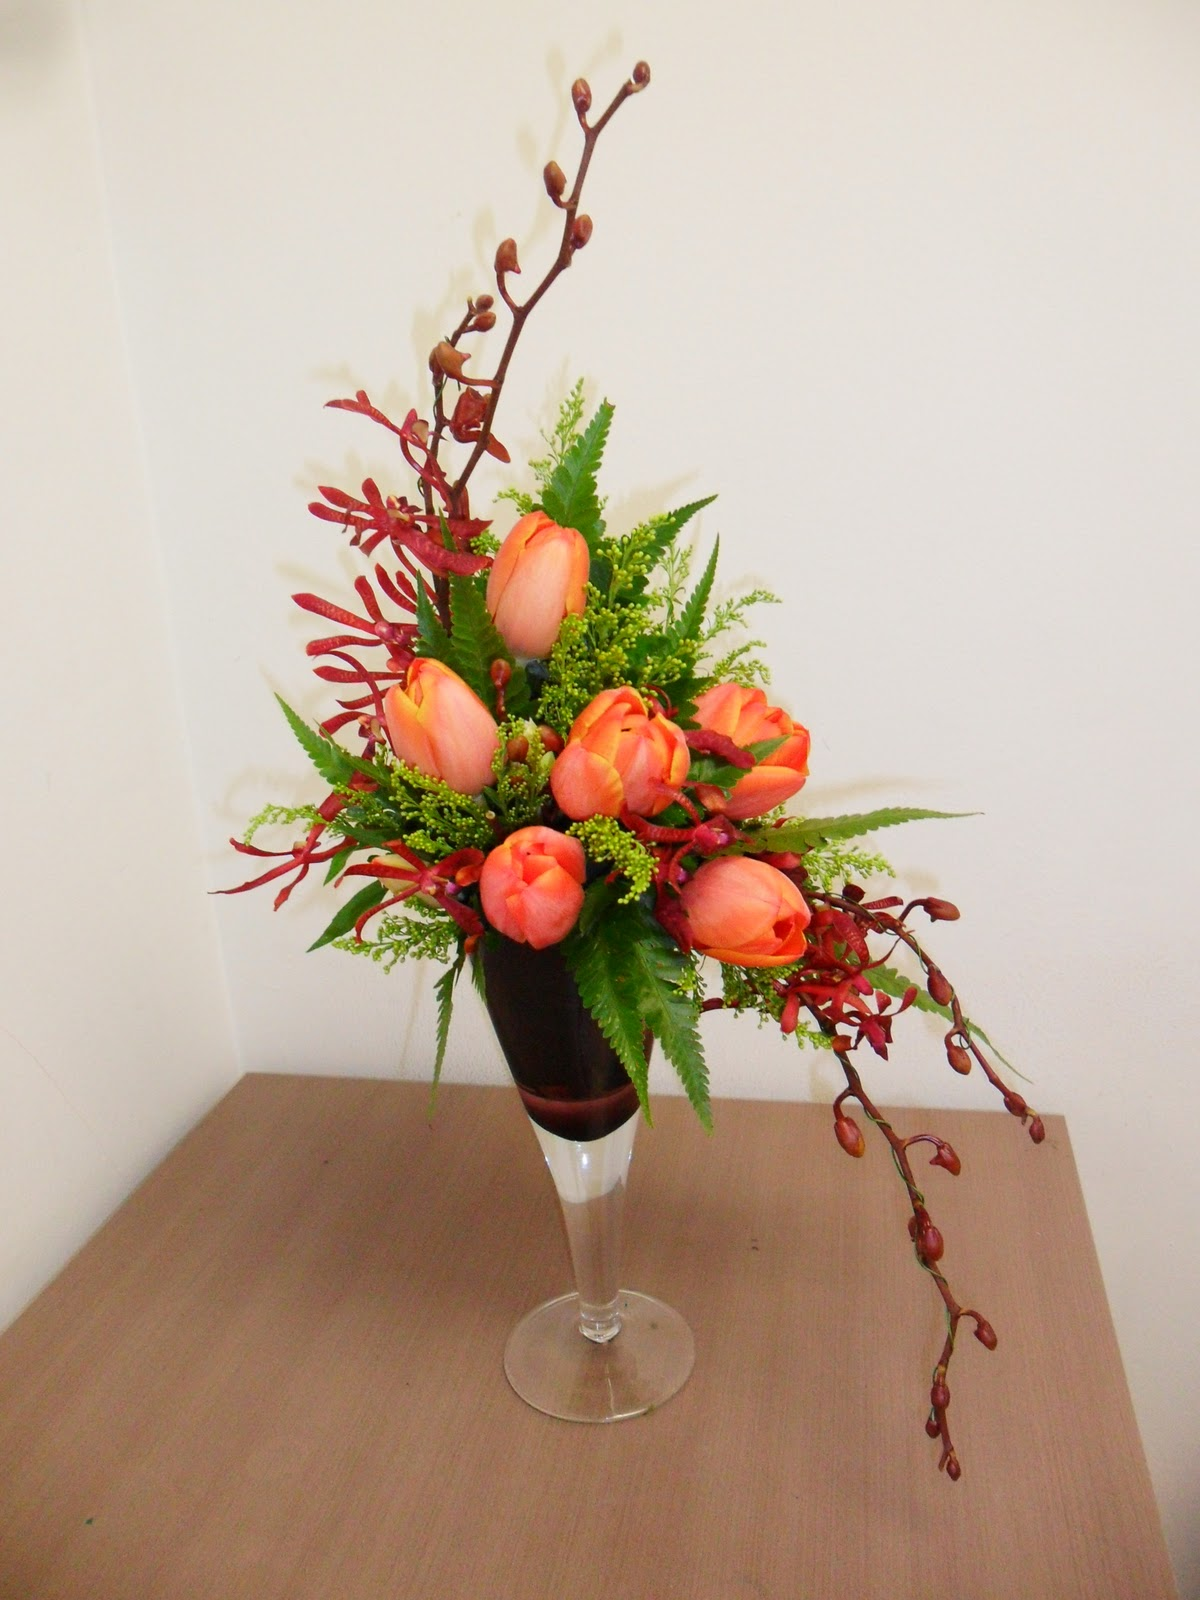 The art of flower arrangement and beauty it bored